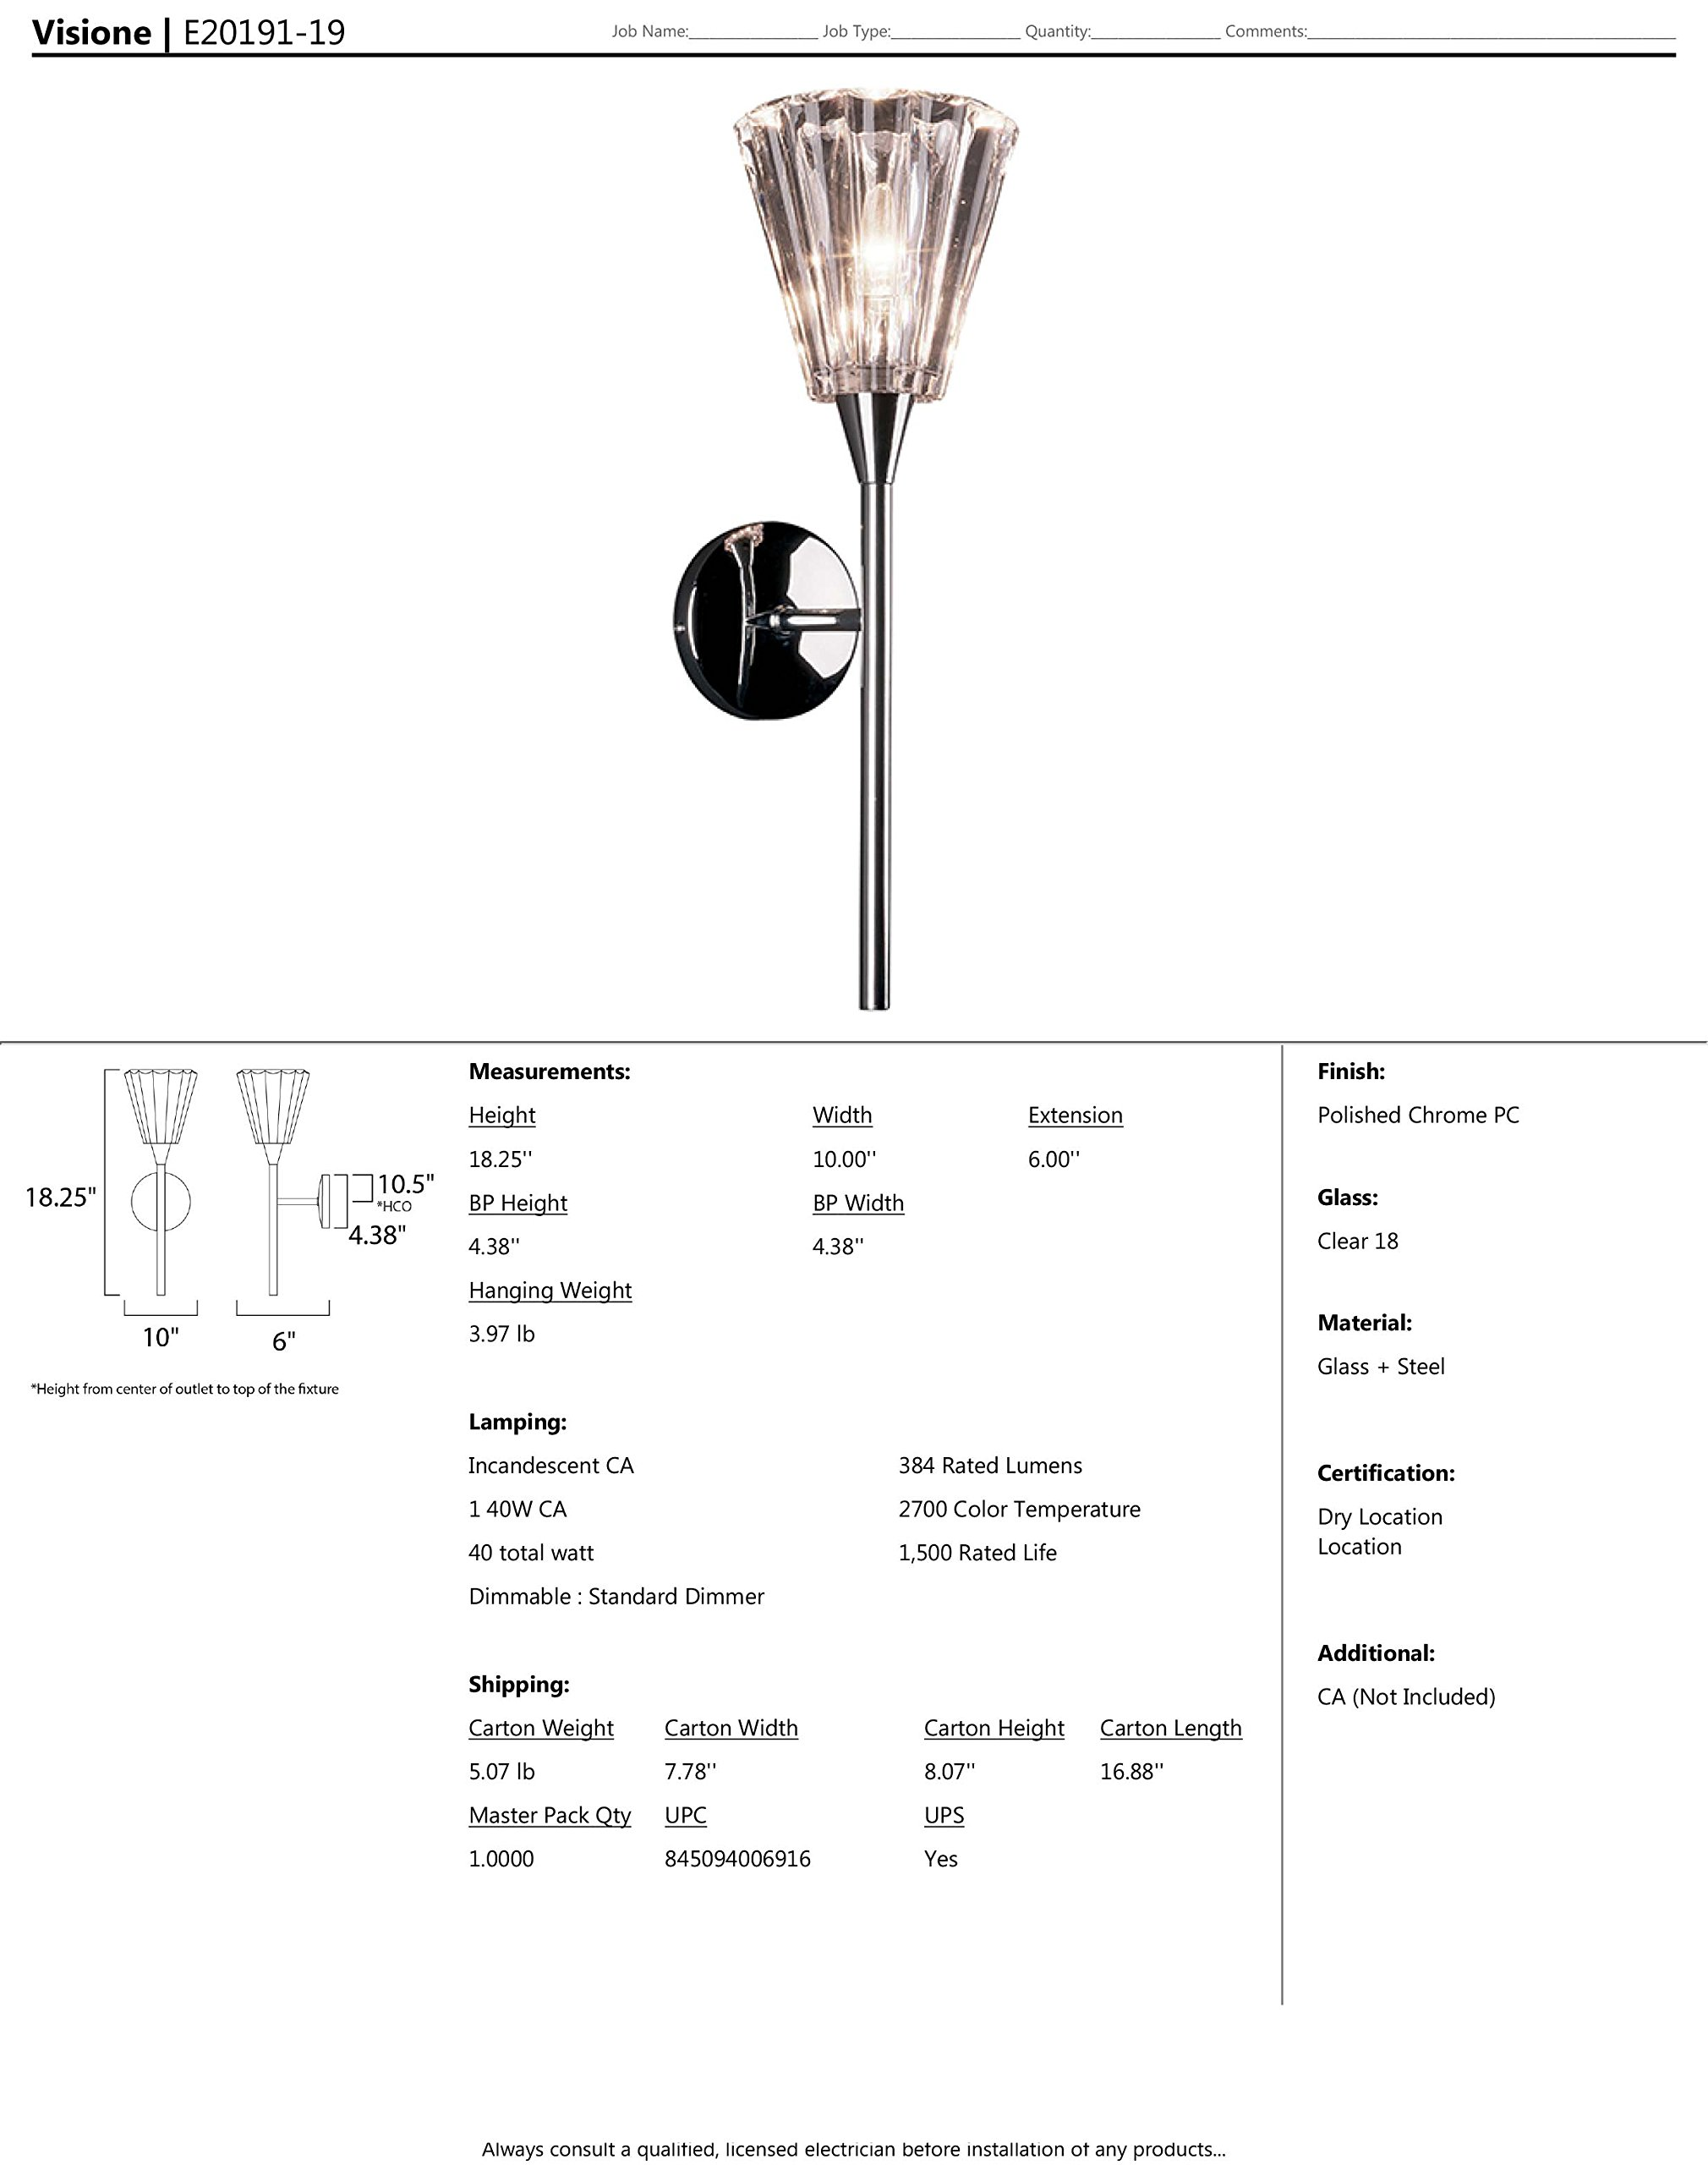 ET2 E20191-19 Visione 1-Light Wall Sconce, Polished Chrome Finish, Clear Glass, CA Incandescent Incandescent Bulb, 20W Max., Dry Safety Rated, 2900K Color Temp., Standard Dimmable, Shade Material, 630 Rated Lumens by ET2 Lighting (Image #2)